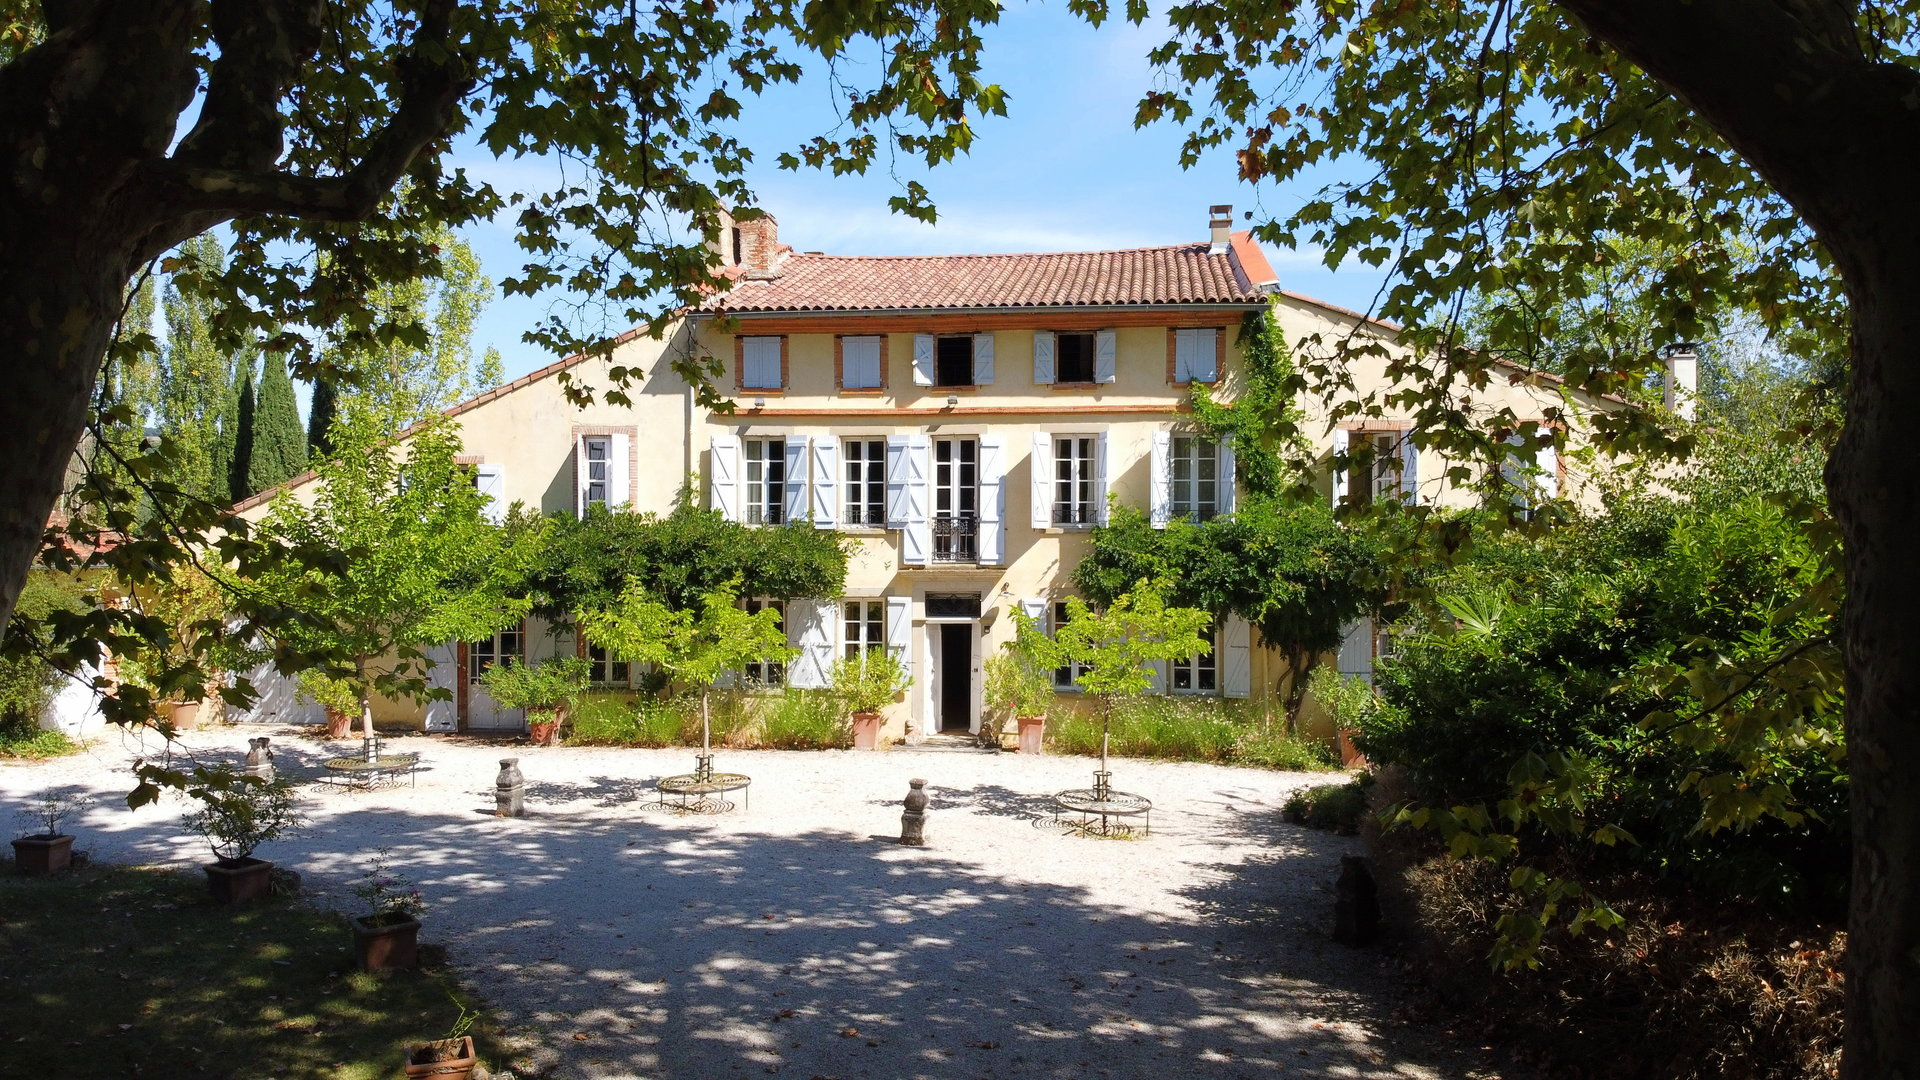 Elegant traditional Maison de Maitre in peaceful surroundings